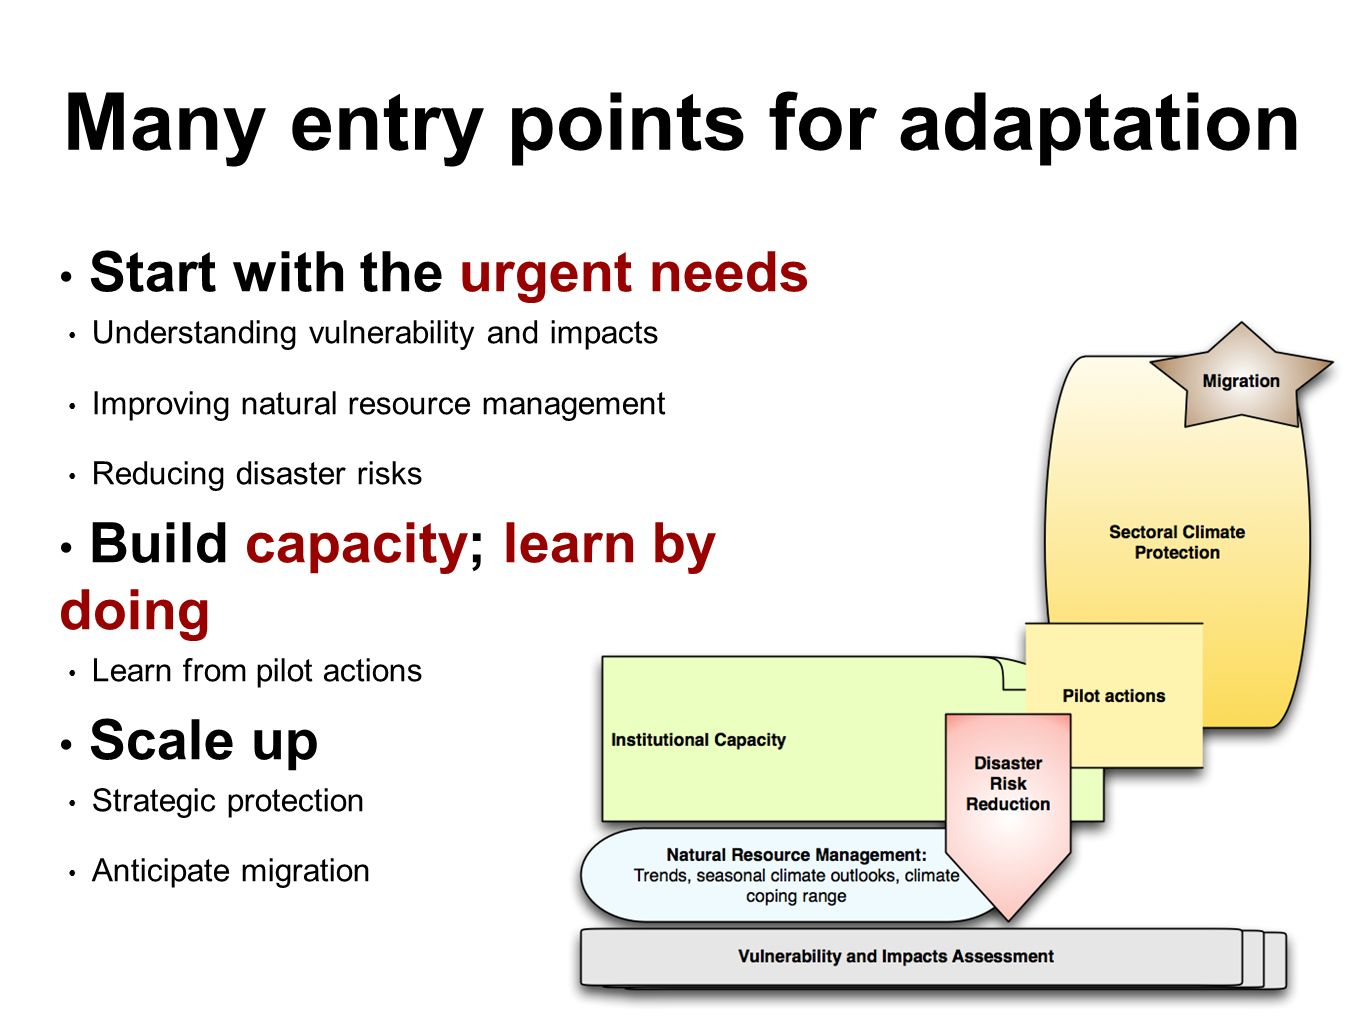 Many entry points for adaptation Start with the urgent needs Understanding vulnerability and impacts Improving natural resource management Reducing disaster risks Build capacity; learn by doing Learn from pilot actions Scale up Strategic protection Anticipate migration